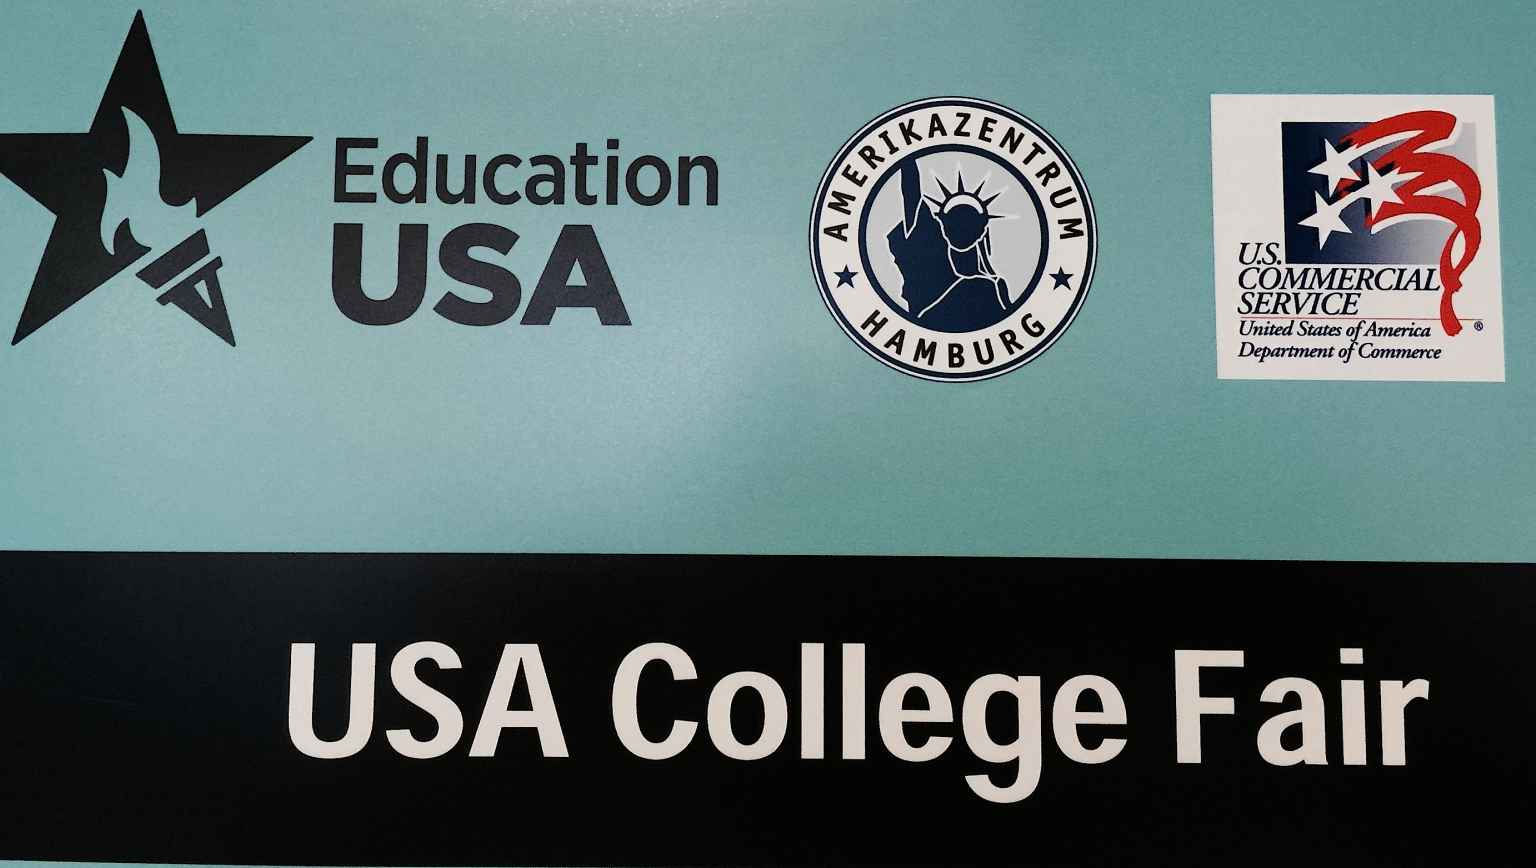 EducationUSA College Fair April 2015